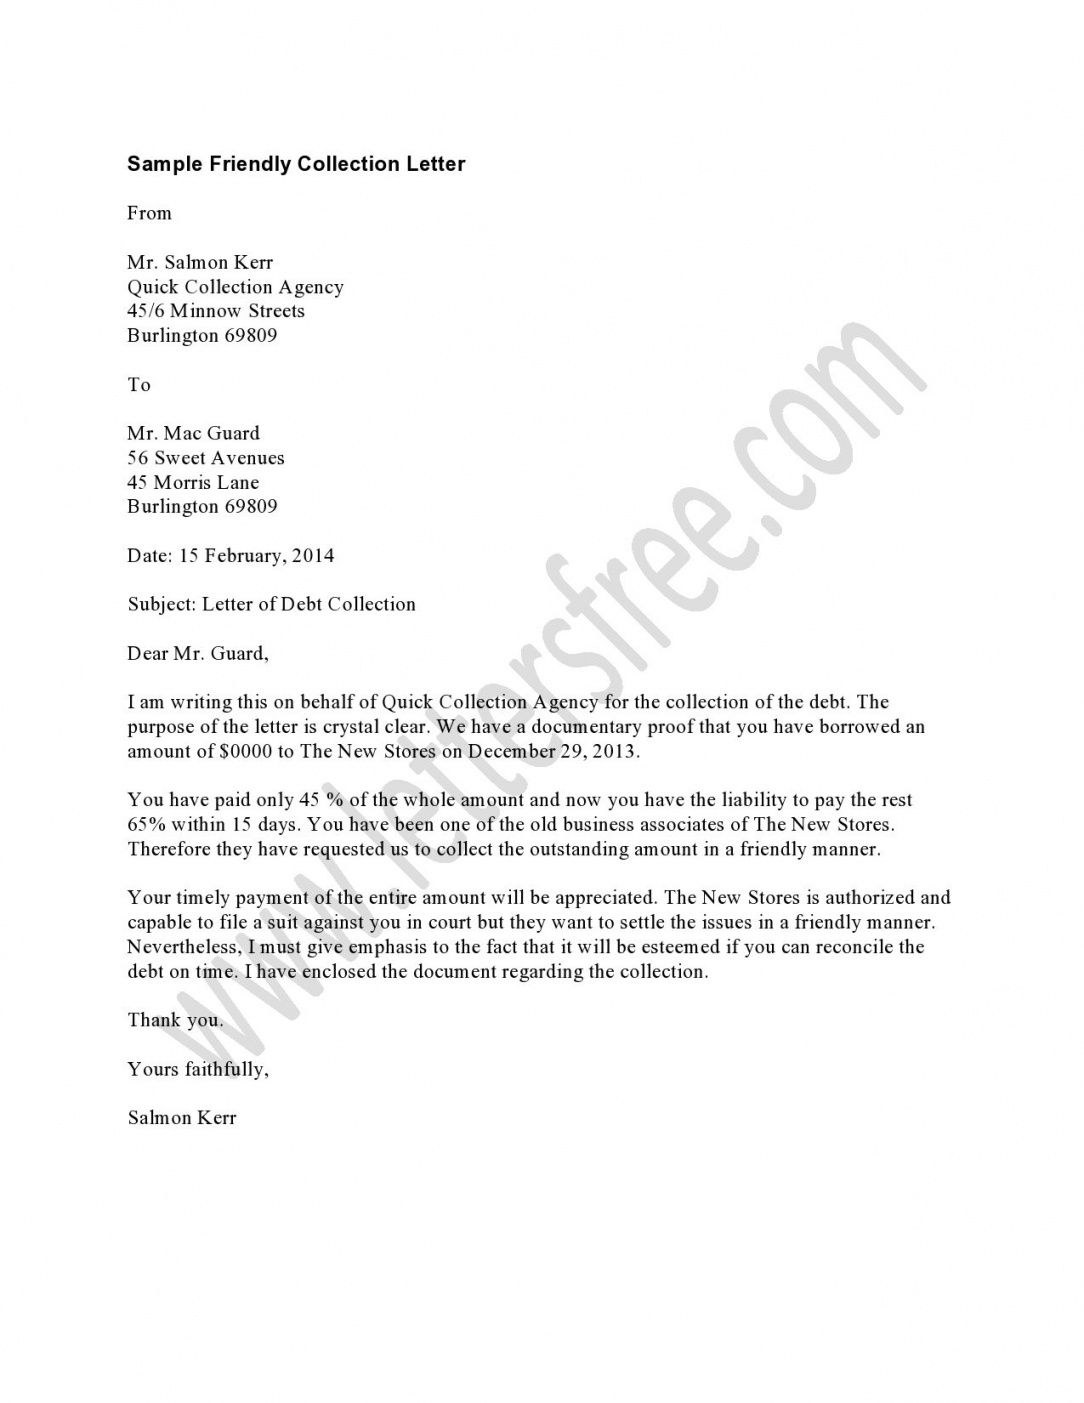 Friendly Collection Letter Template In 2020 Collection Letter